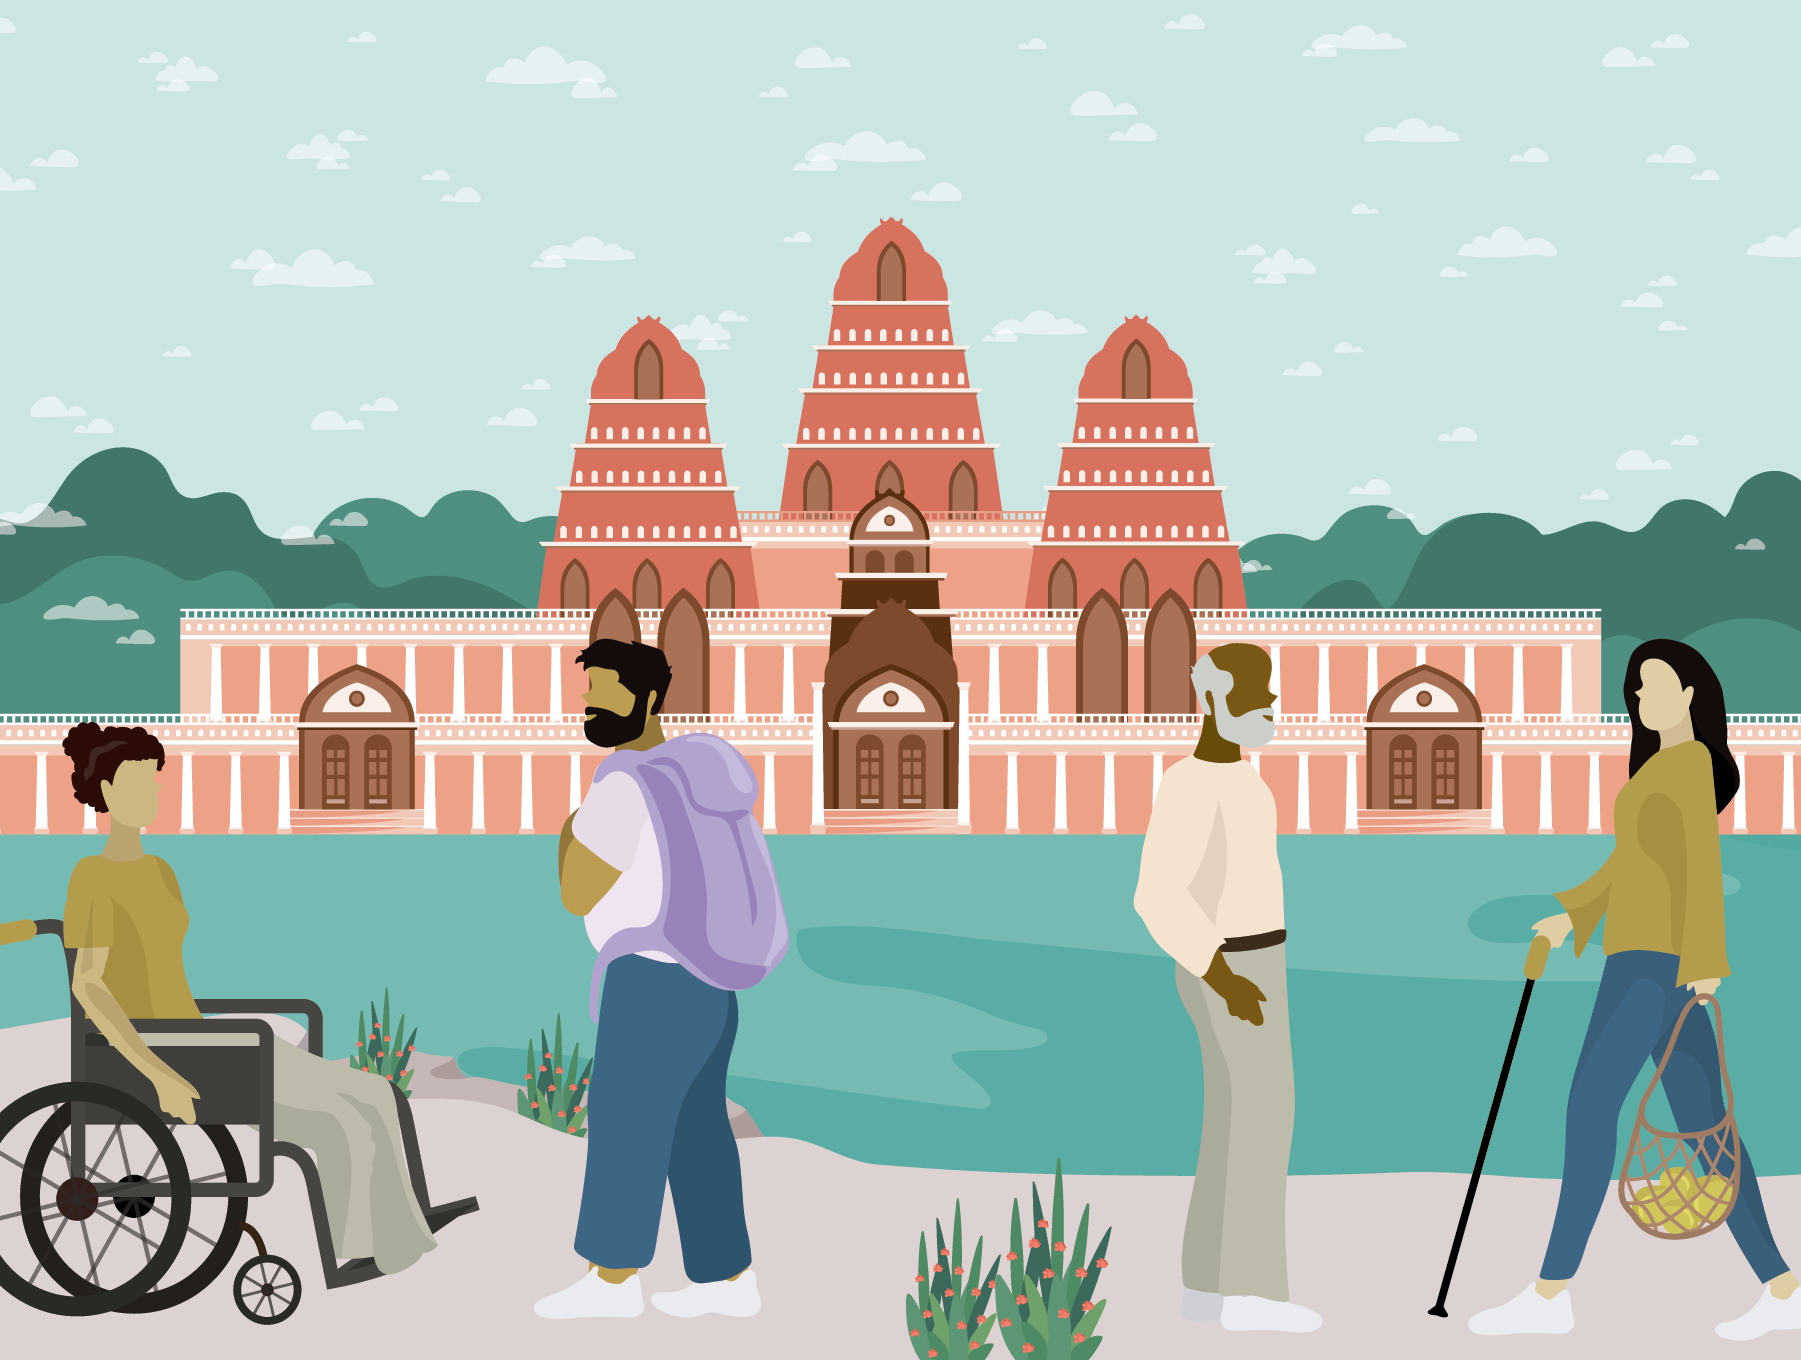 Four people of various ages and disabilities in the foreground, the large Angkor Wat temple in the background. Illustration.